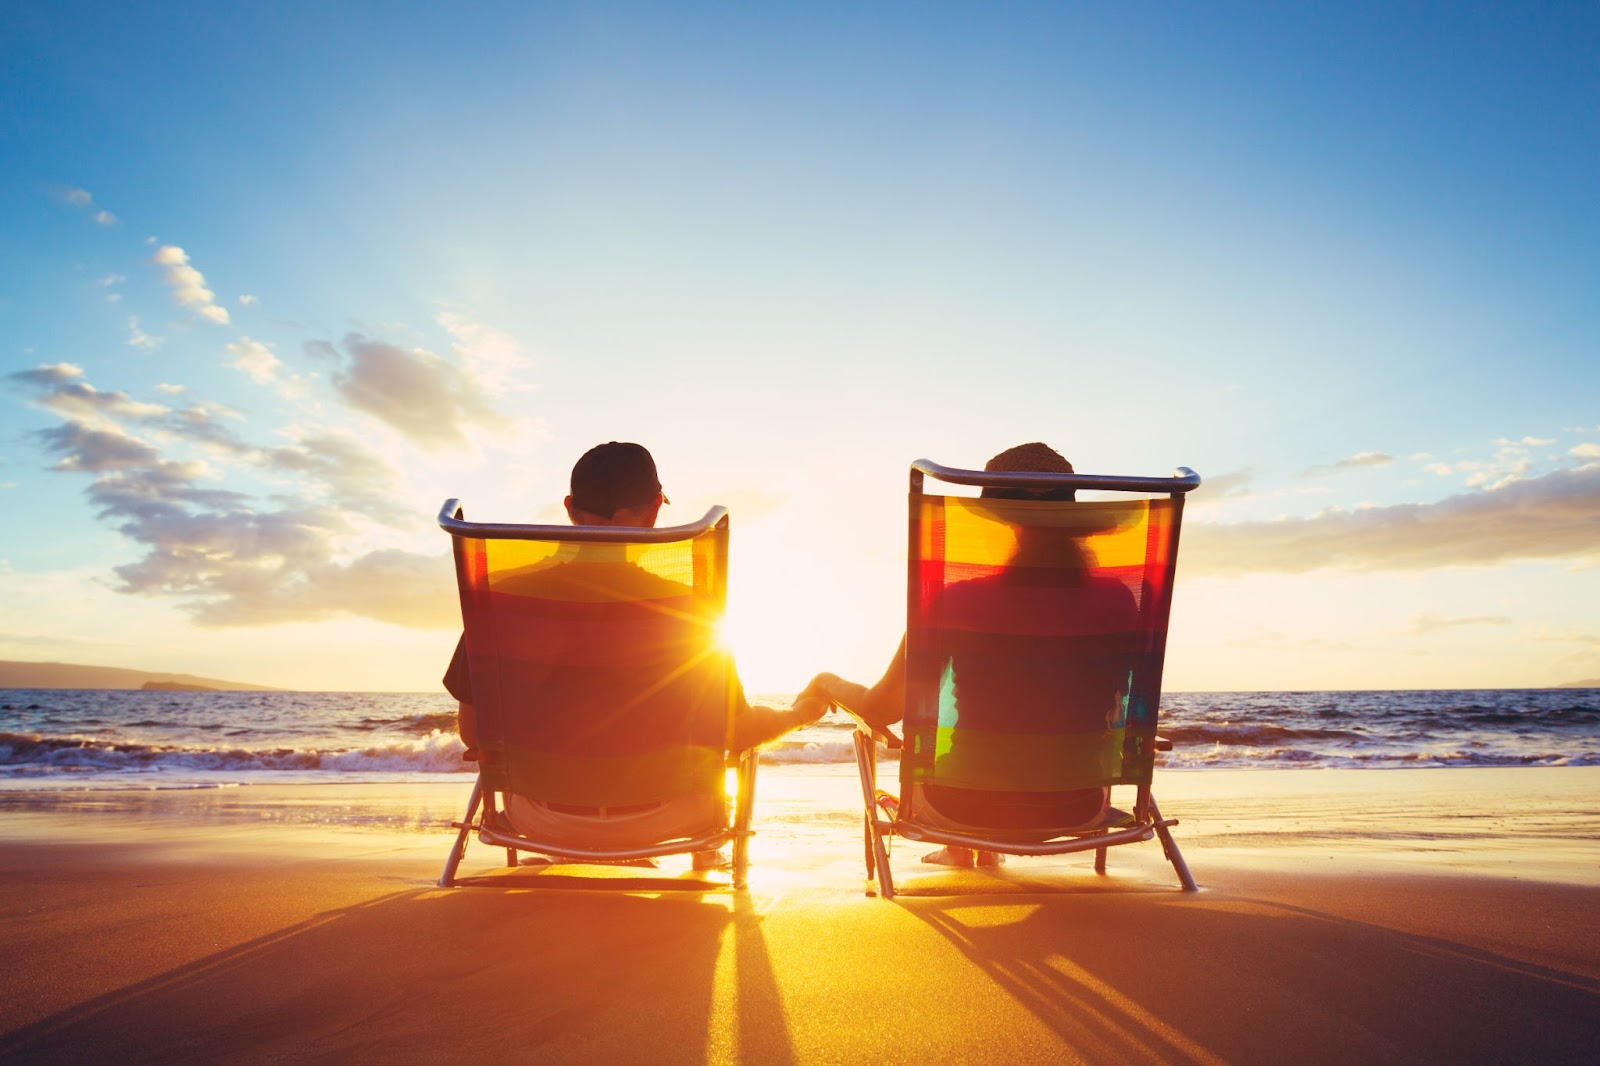 Couple holding hands while sitting on beach chairs and watching the sunset